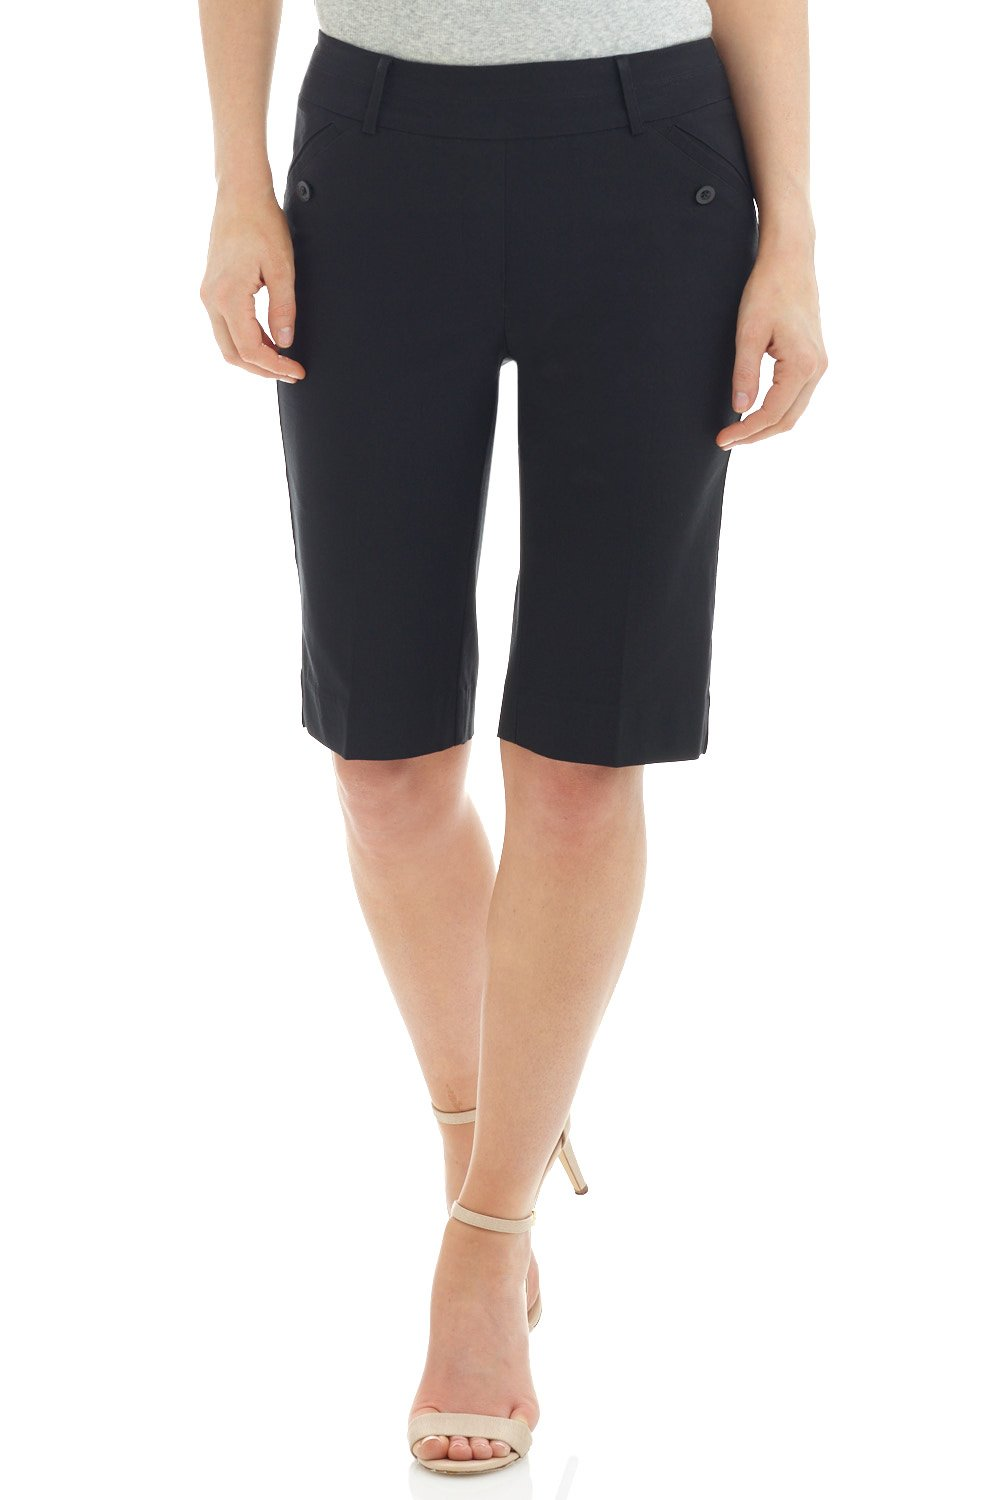 Rekucci Women's Ease in to Comfort Fit Modern Pull On Bermuda Short with Pockets (16,Black)